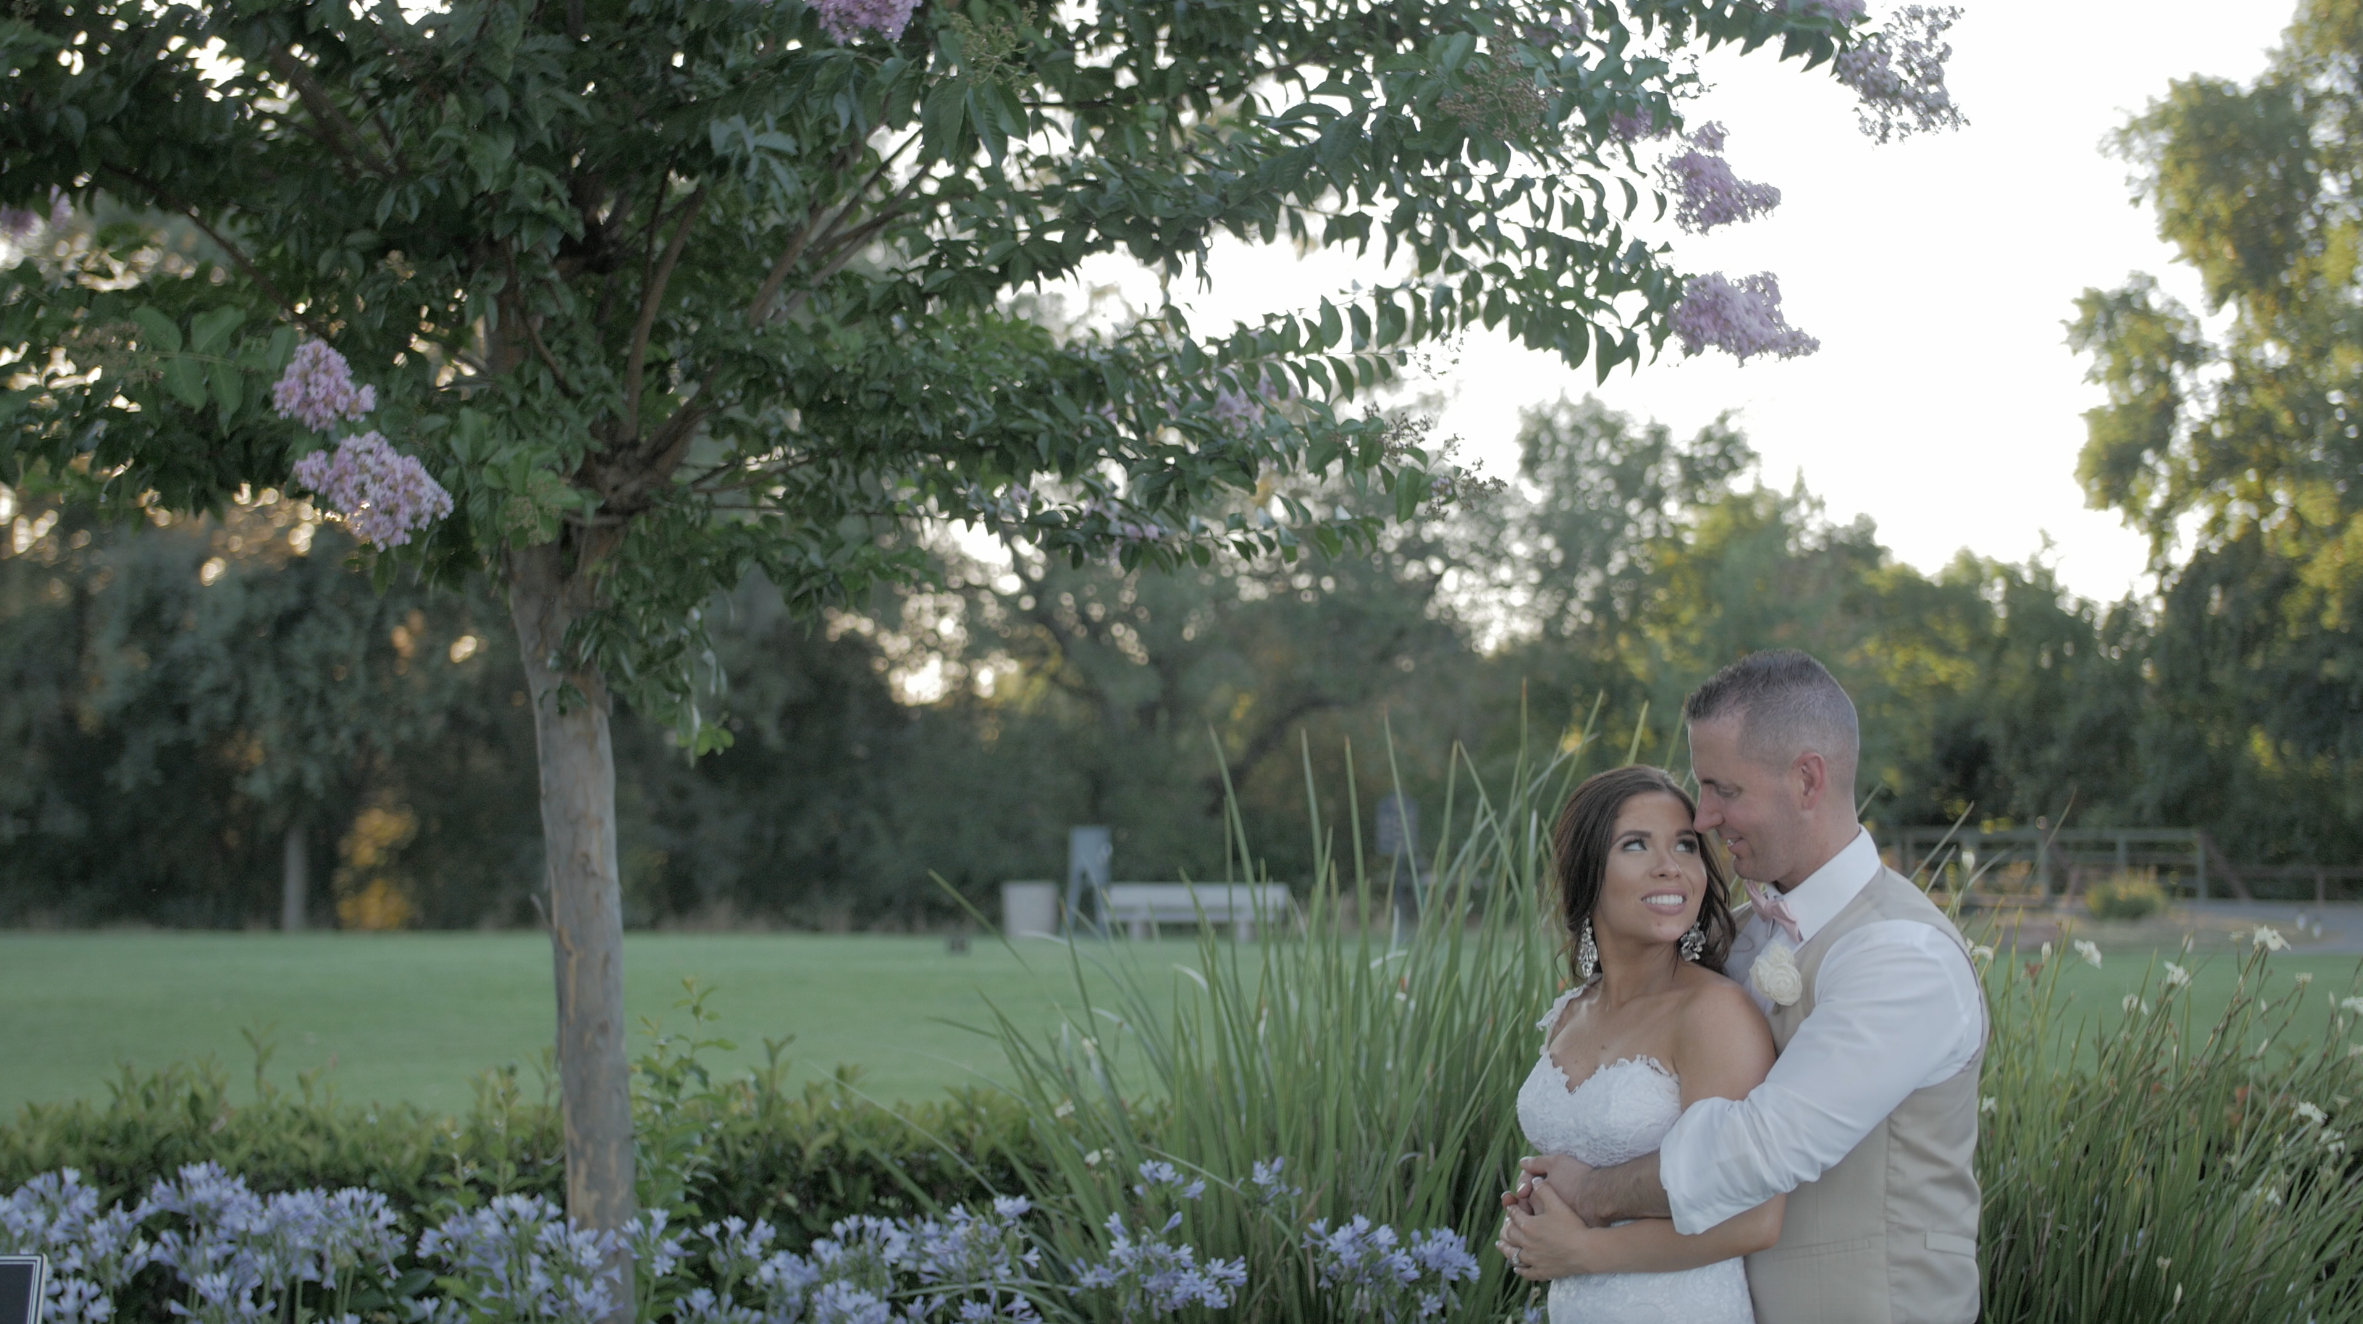 Matt + Chelsea | Sacramento, California | The Pavilion at Haggin Oaks